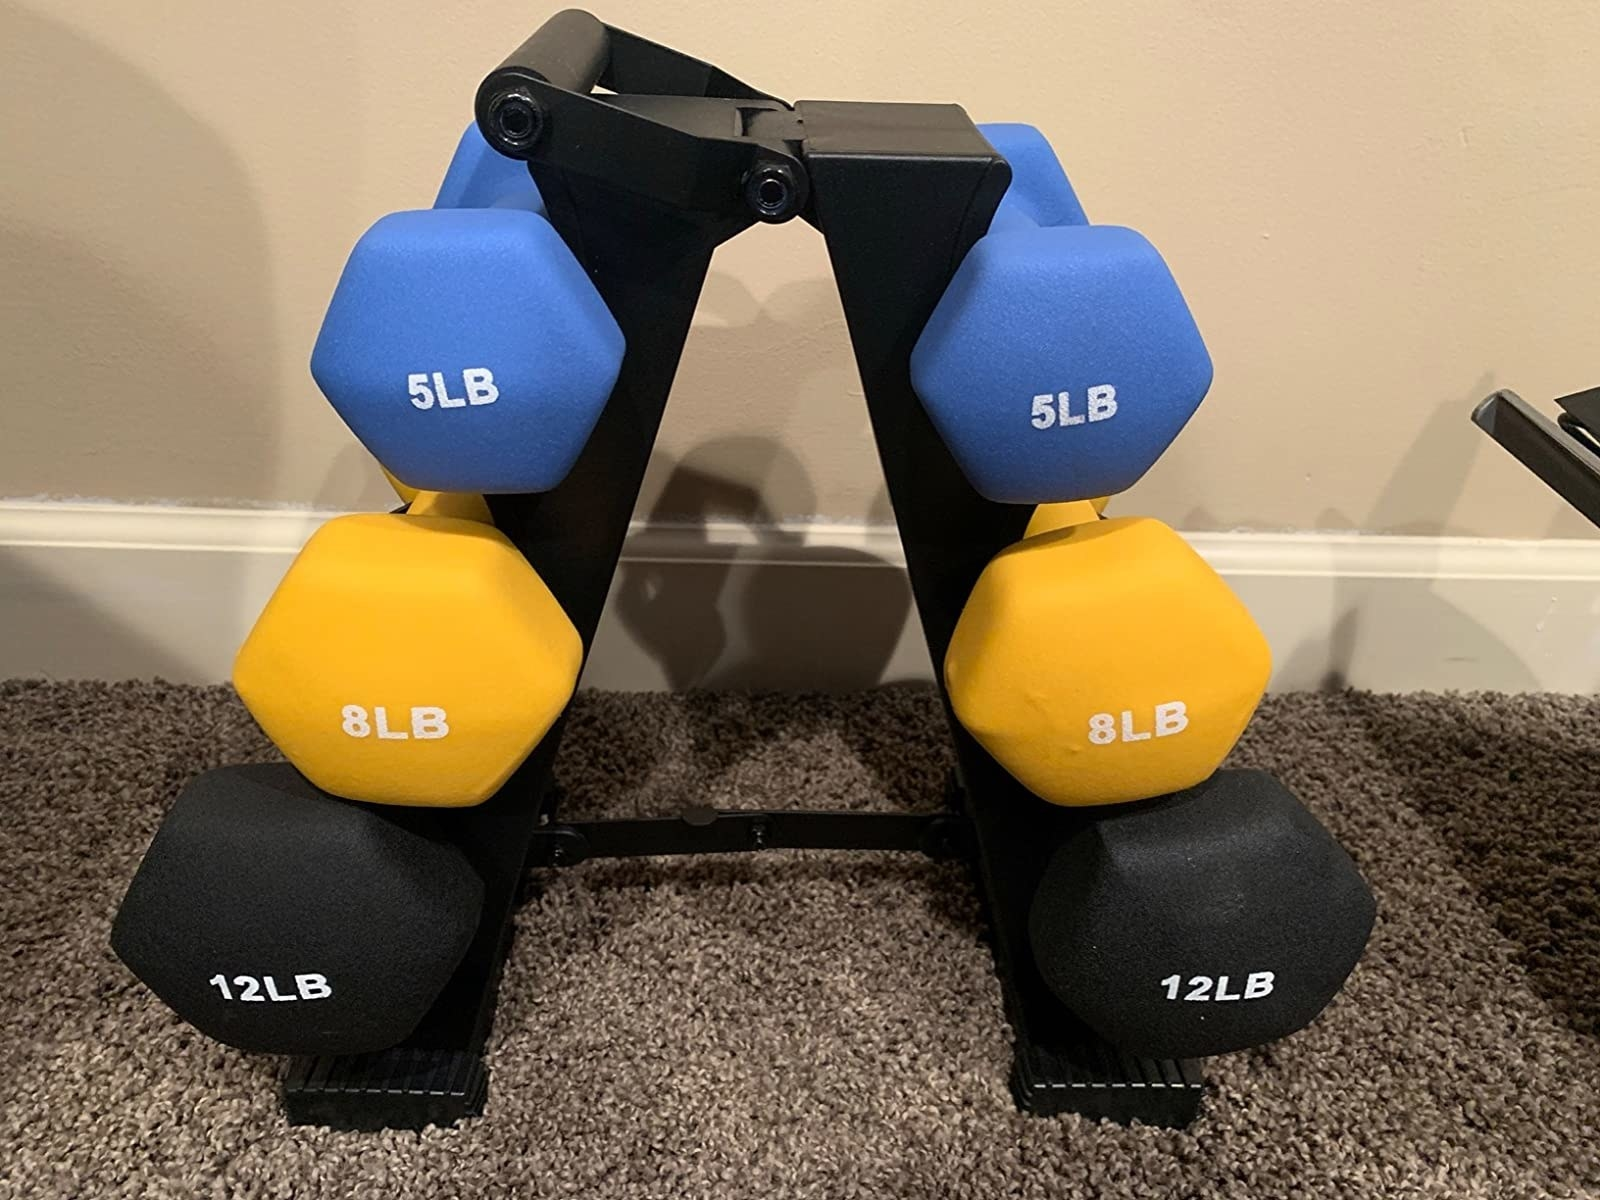 The weights